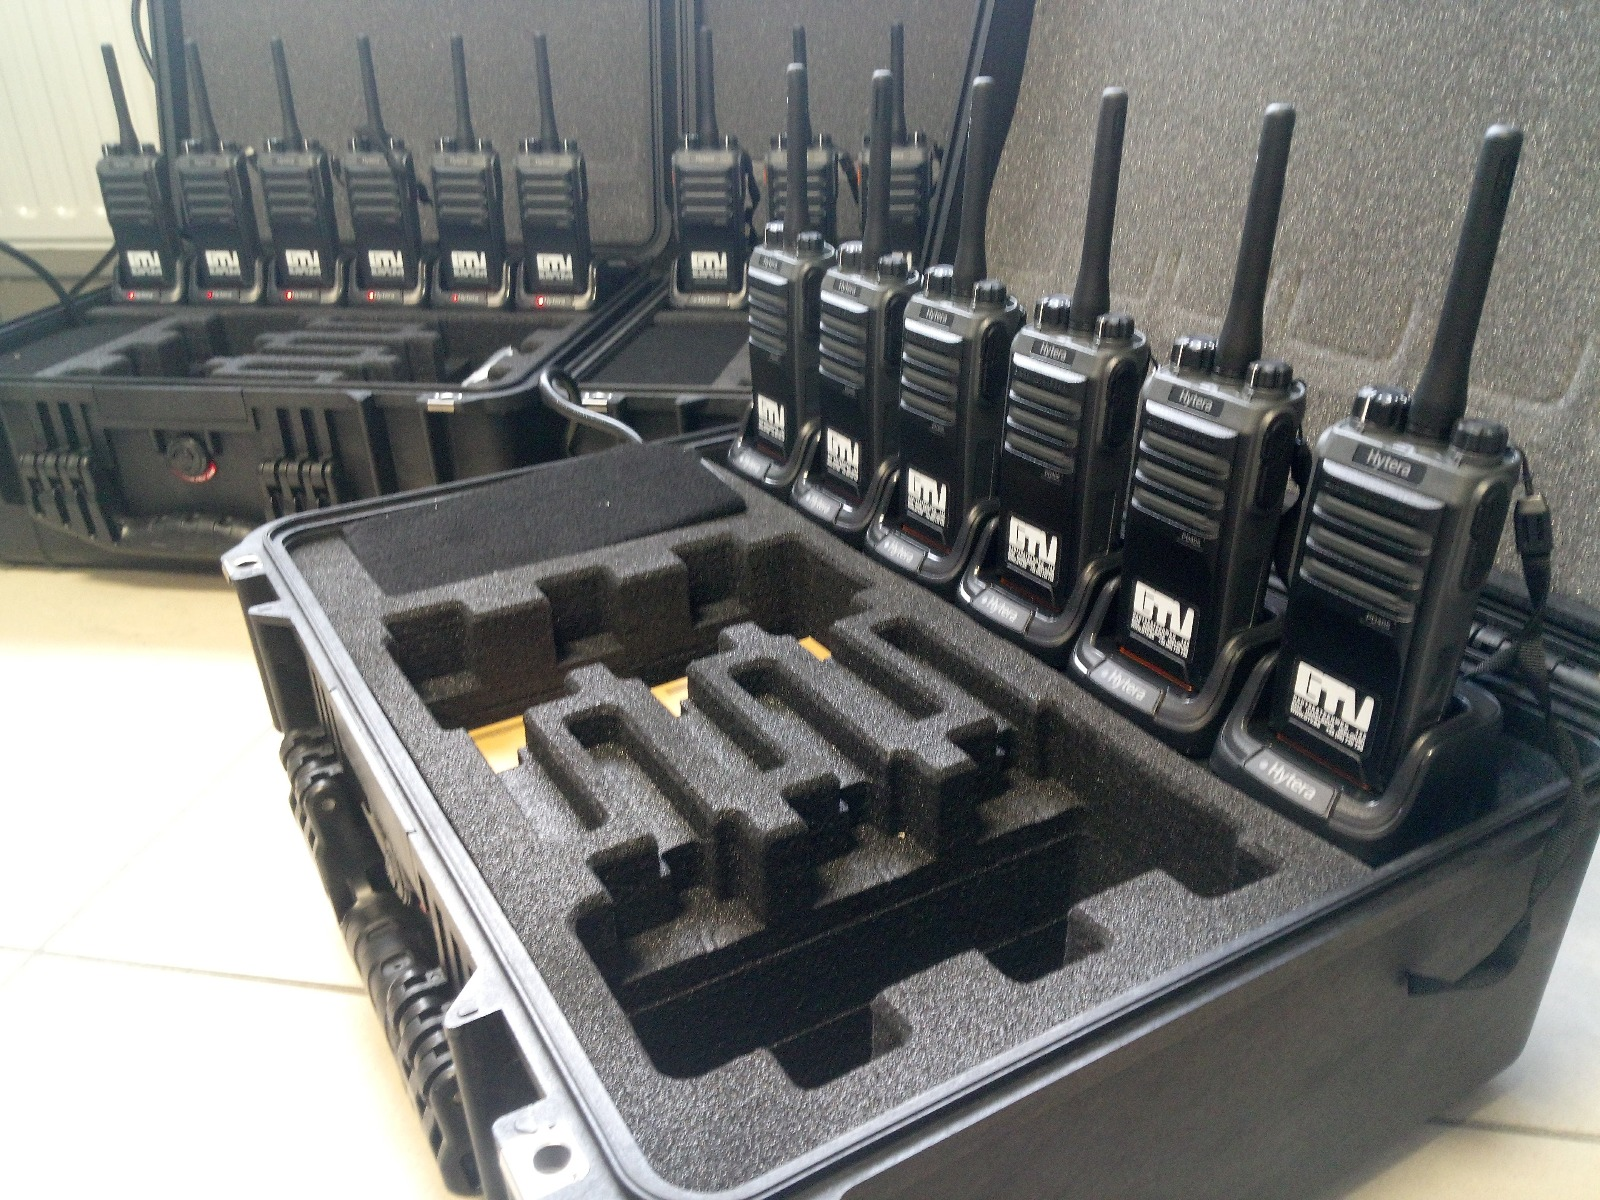 hytera pd405 dmr radios in charge case